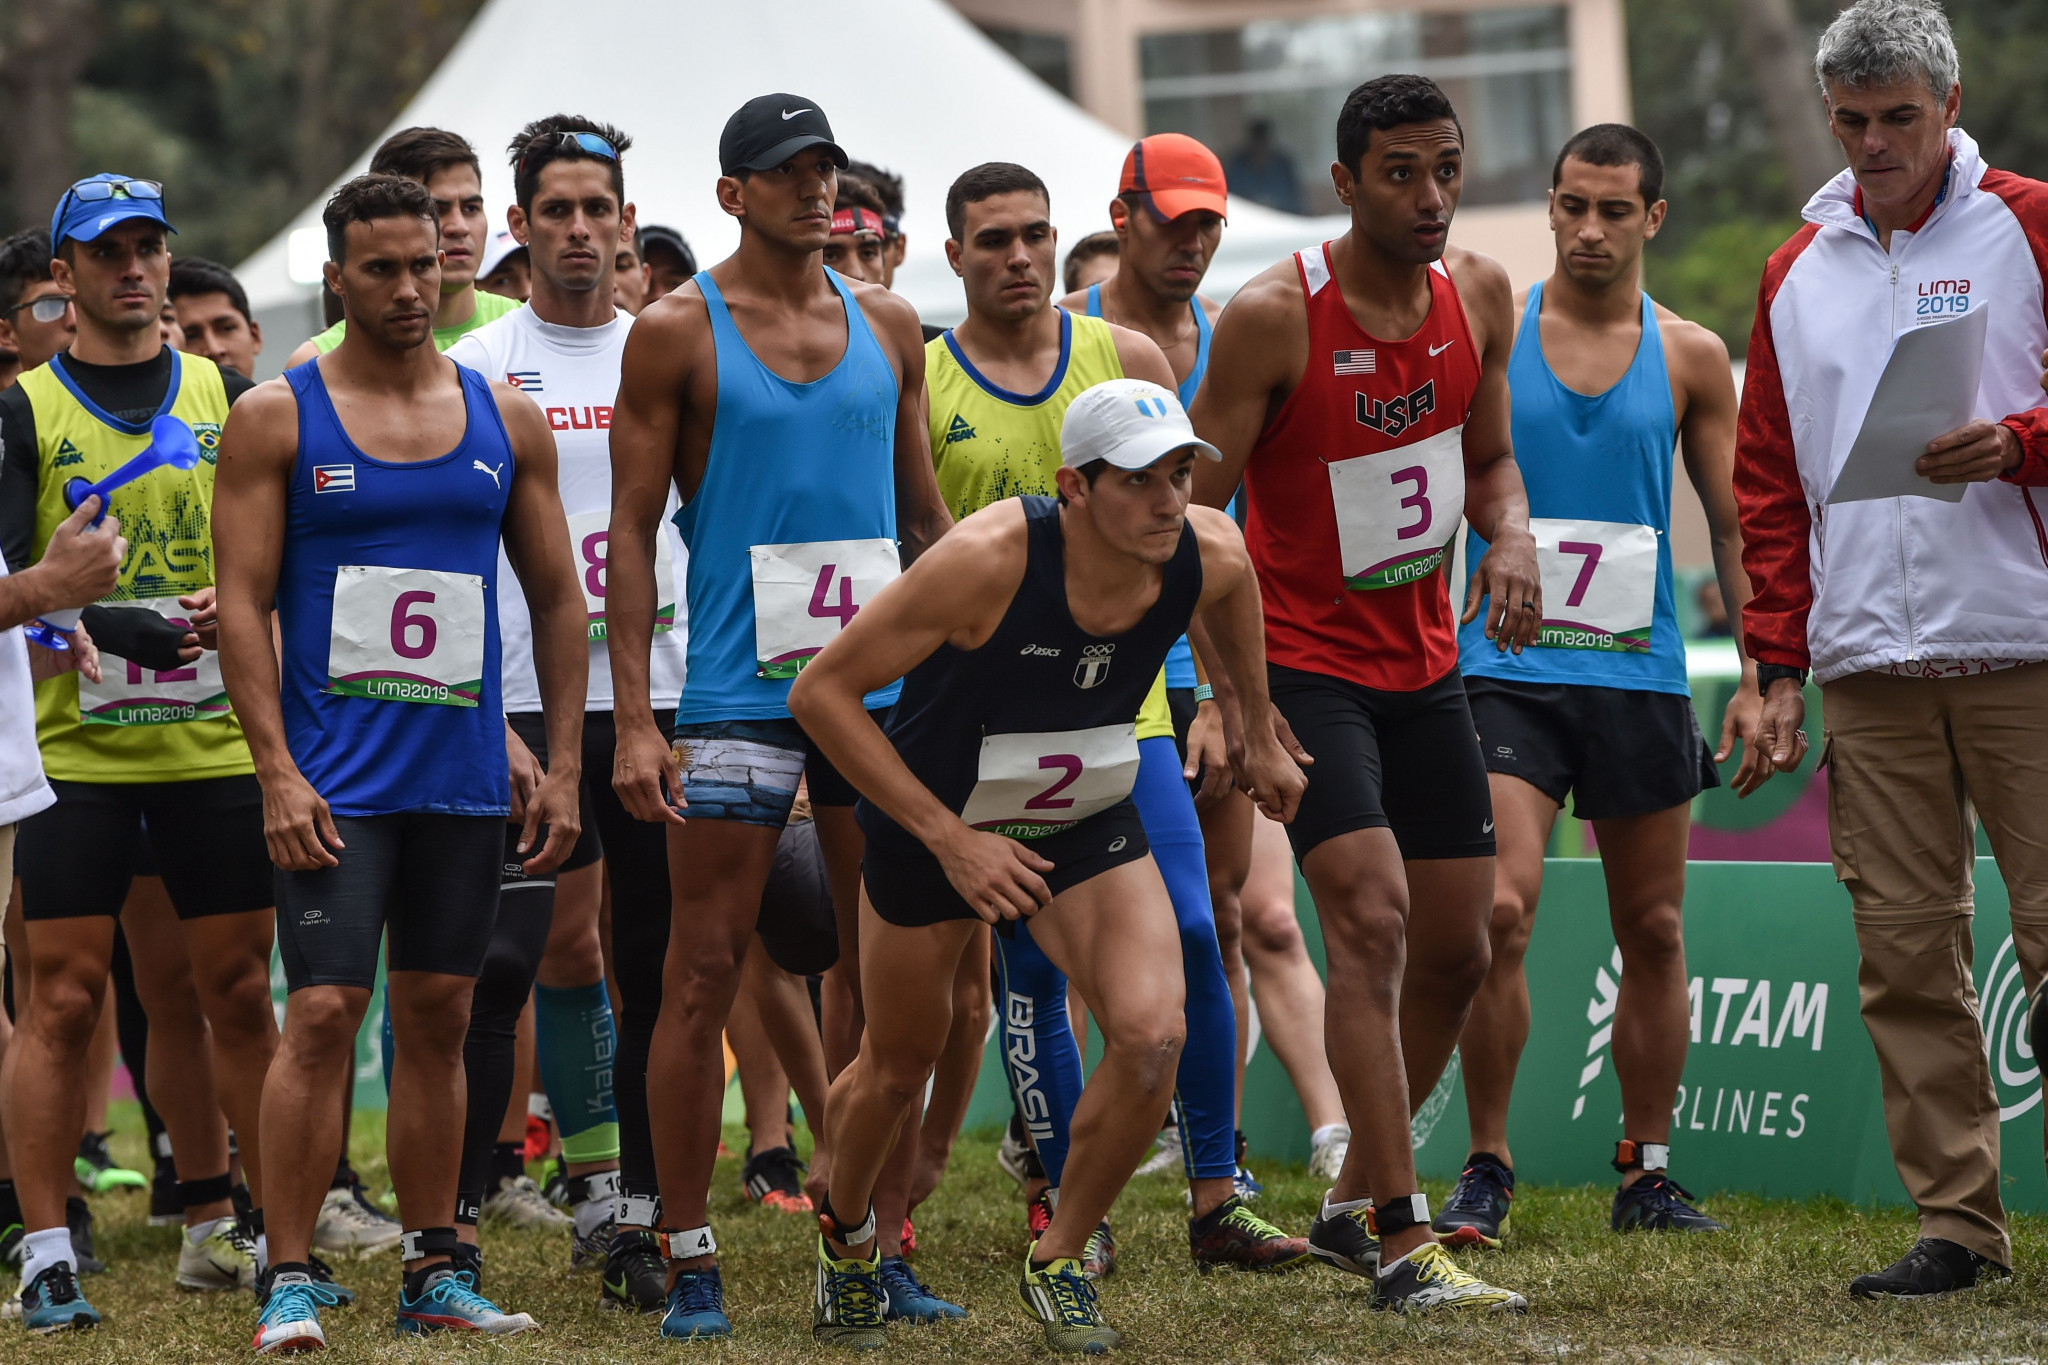 The Laser Run World Championships will run alongside the Pentathlon World Championships for the first time ©Getty Images